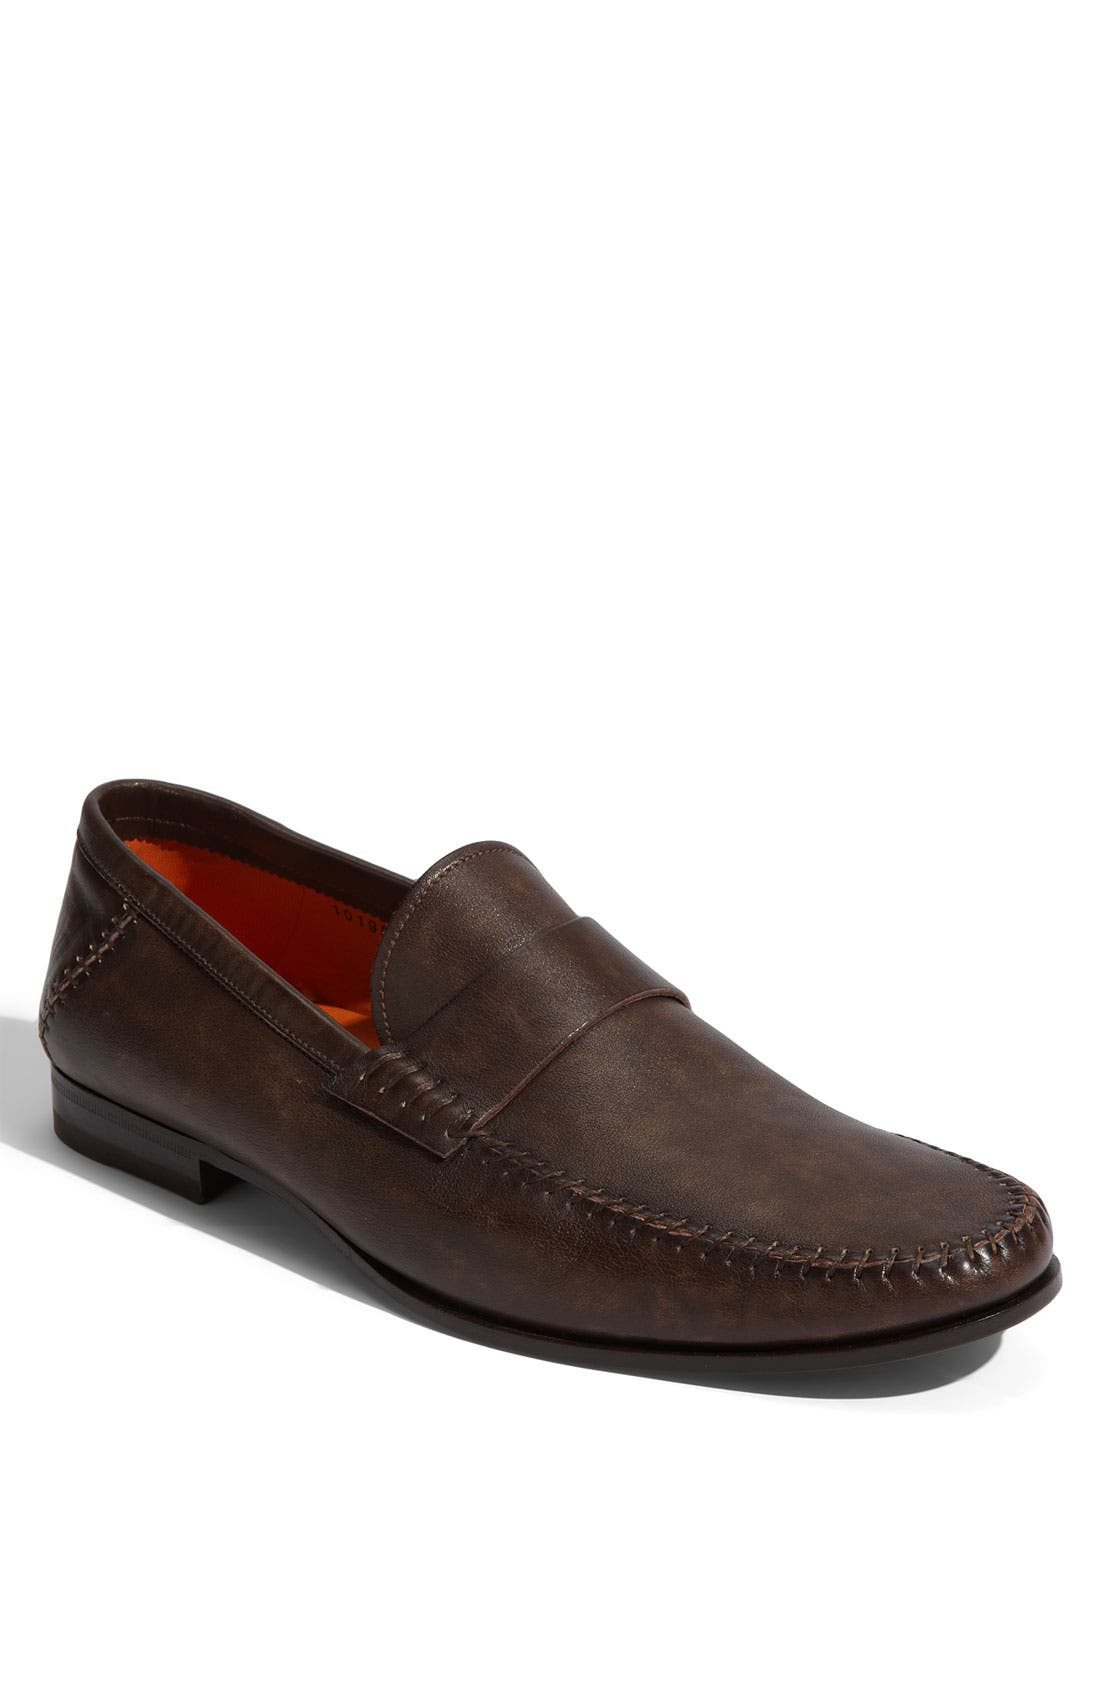 SANTONI Paine Loafer in Dark Brown